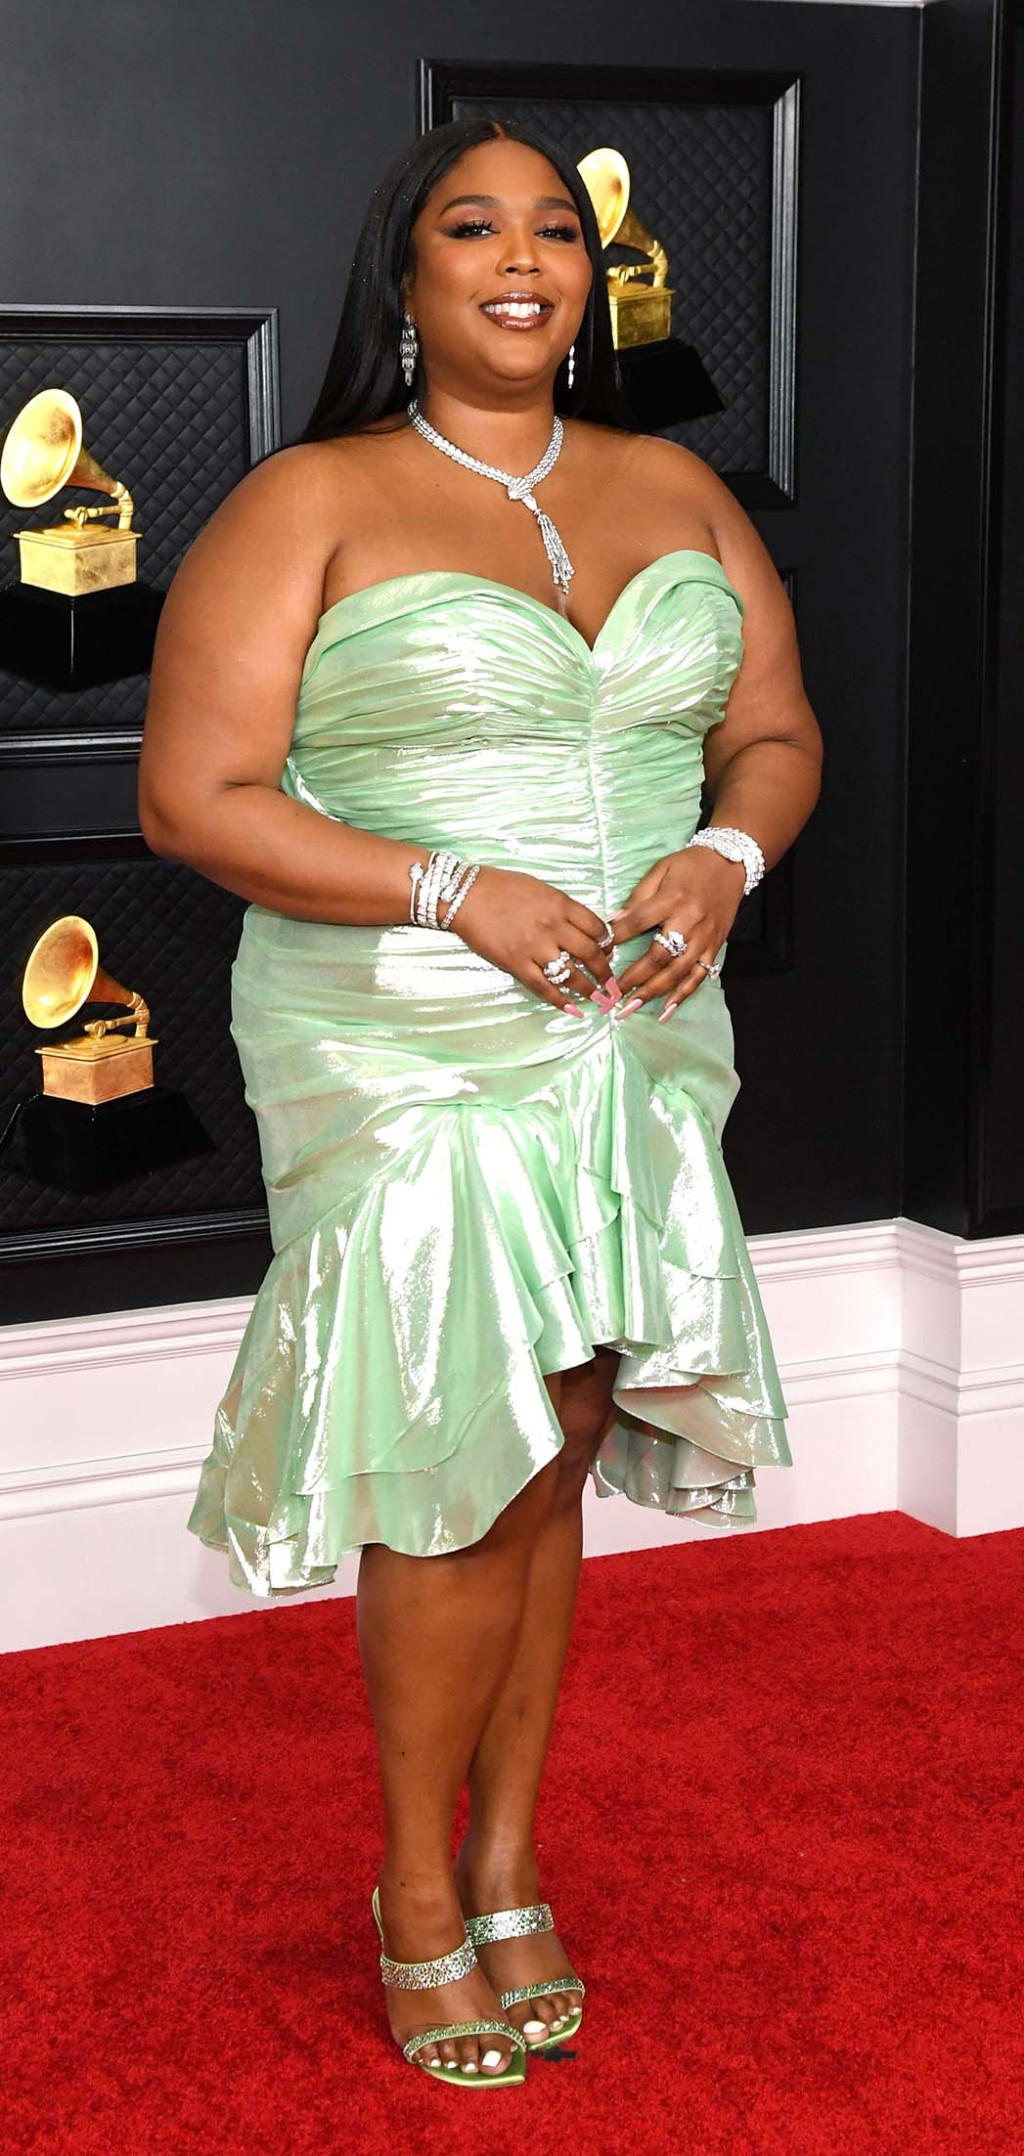 63rd Annual GRAMMY Awards – Lizzo